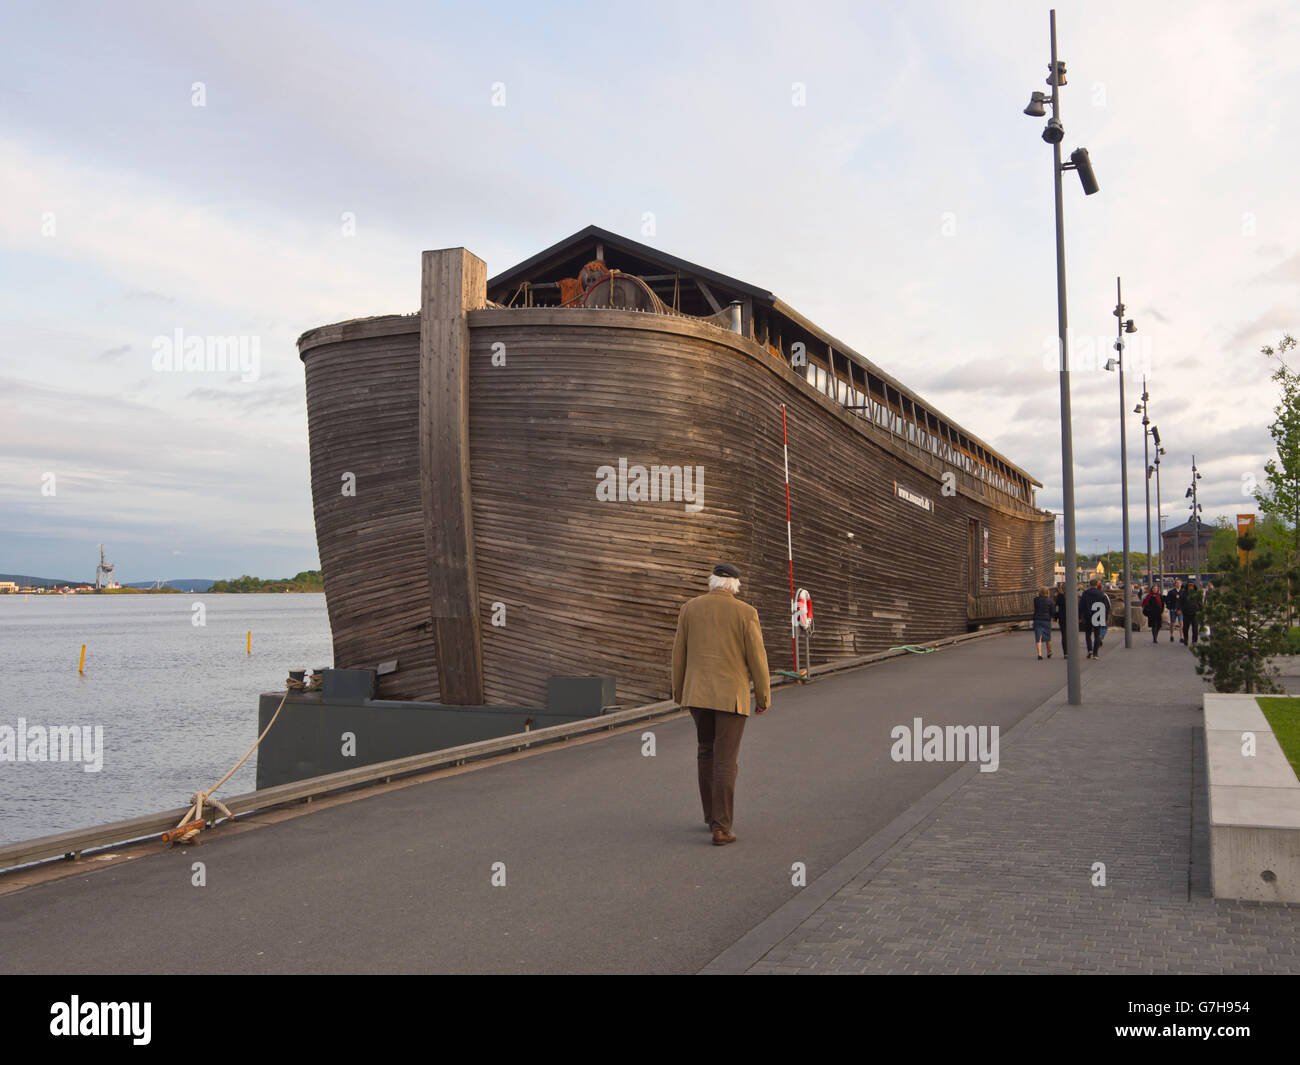 A rebuild of noah's ark in the harbour of Oslo Norway, traveling Europe as a Bible museum - Stock Image